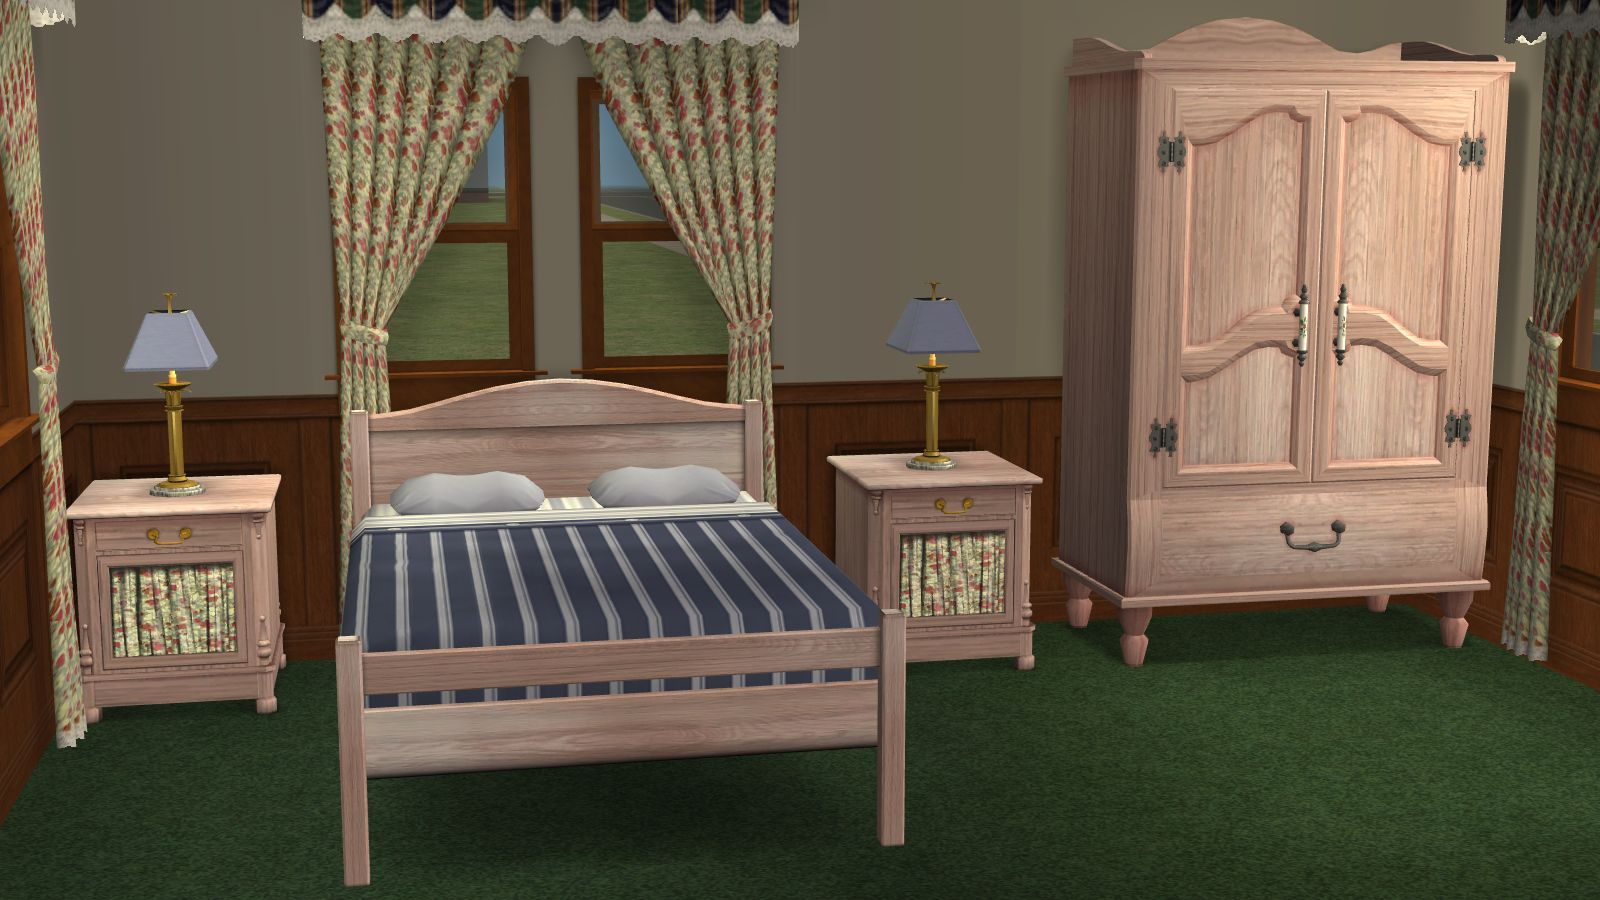 Mod the sims recolors of base game dresser and end table for Matching bed and dresser